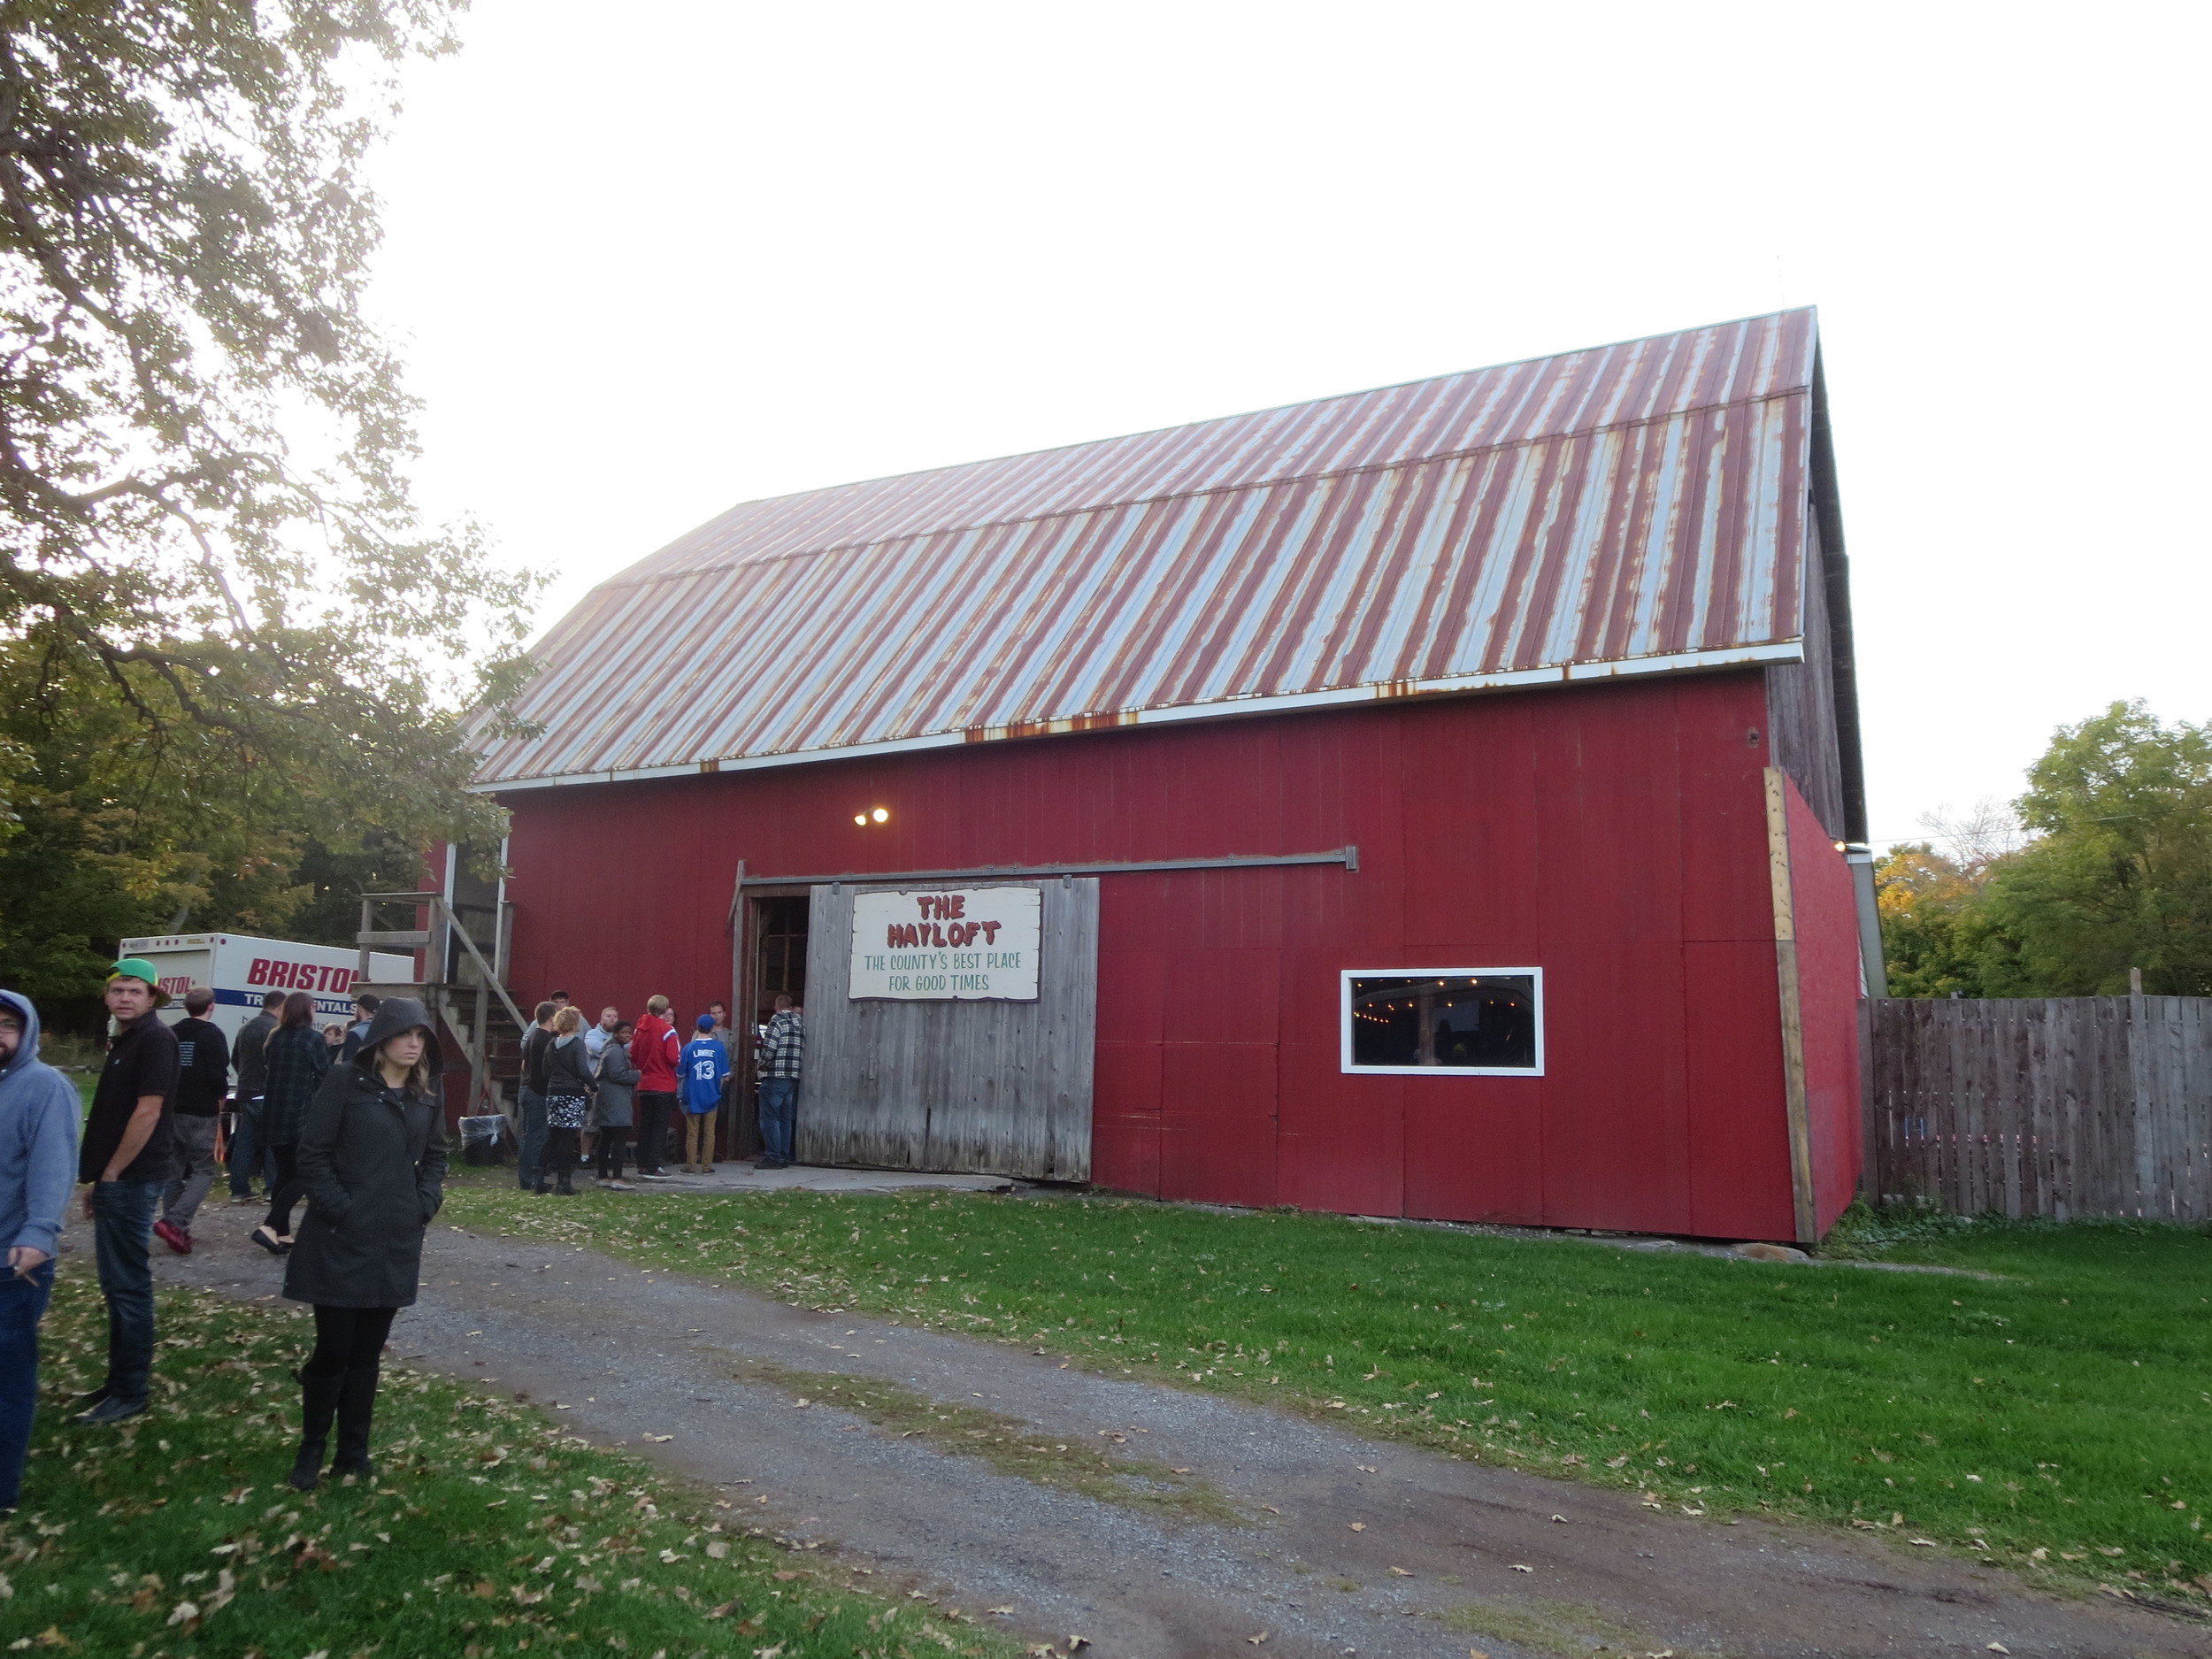 Exterior of The Hayloft